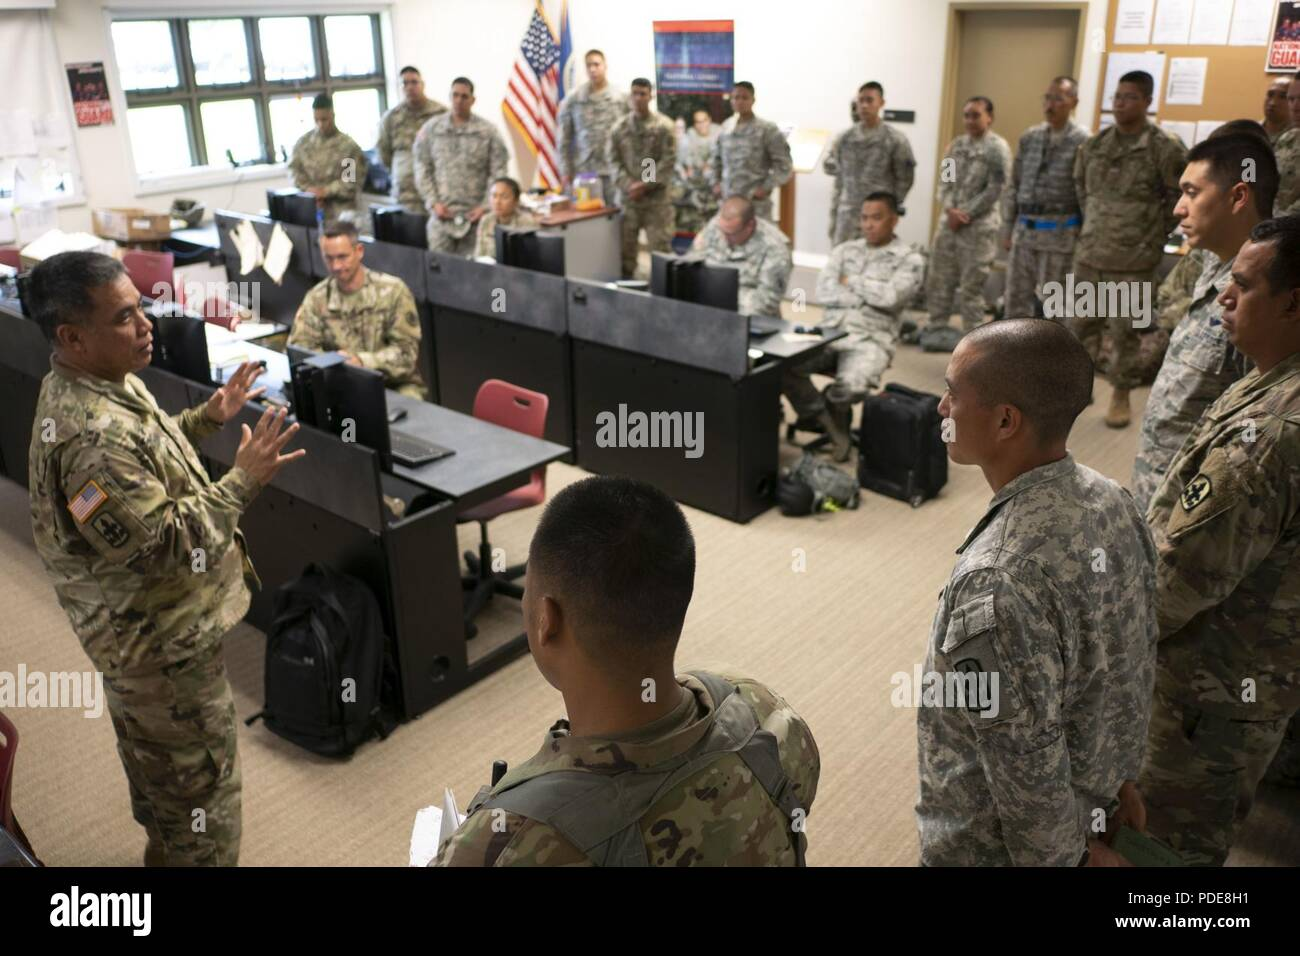 Lt. Col. Shawn Tsuha, Task Force Hawaii commander, addresses his growing team of guardsmen May 16, 2018, at the Joint Operations Center, Hilo, Hawaii. The unit is working alongside with civilian and active duty counterparts under the command of Joint Task Force 5-0 in response to the ongoing volcanic activity on Hawaii Island. - Stock Image